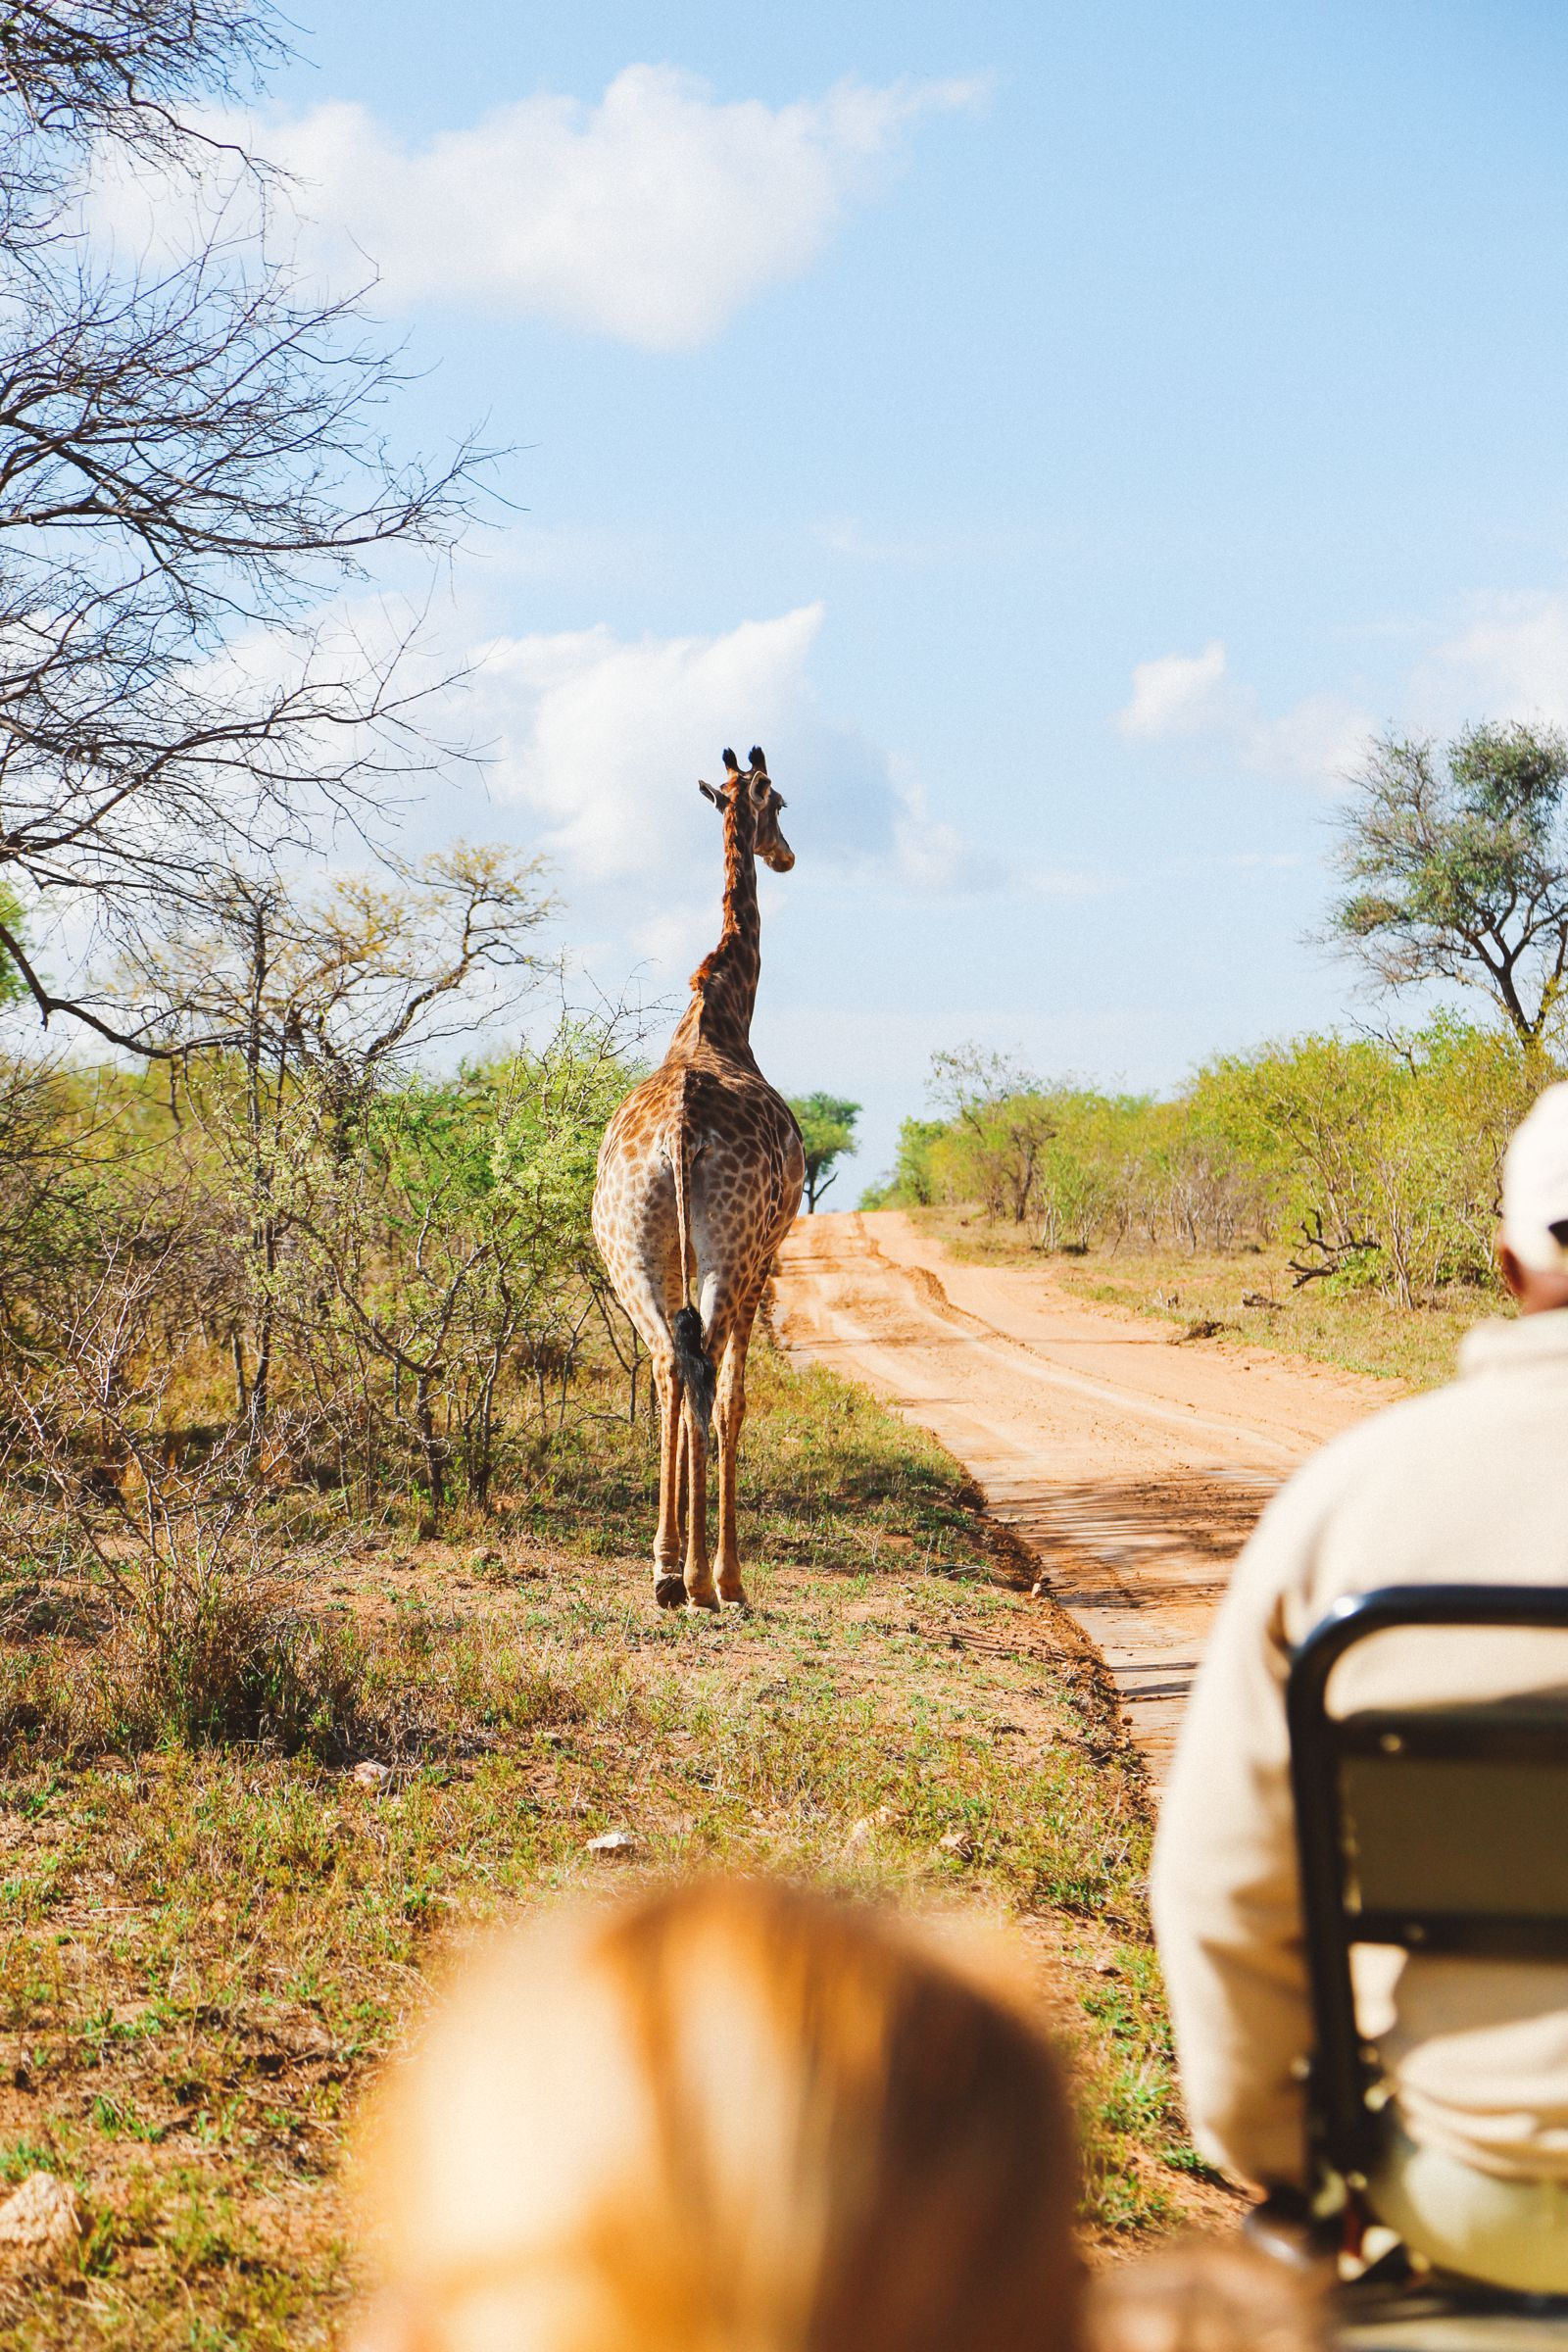 Sunrise Till Sunset - A 24 Hour South African Safari Diary (18)